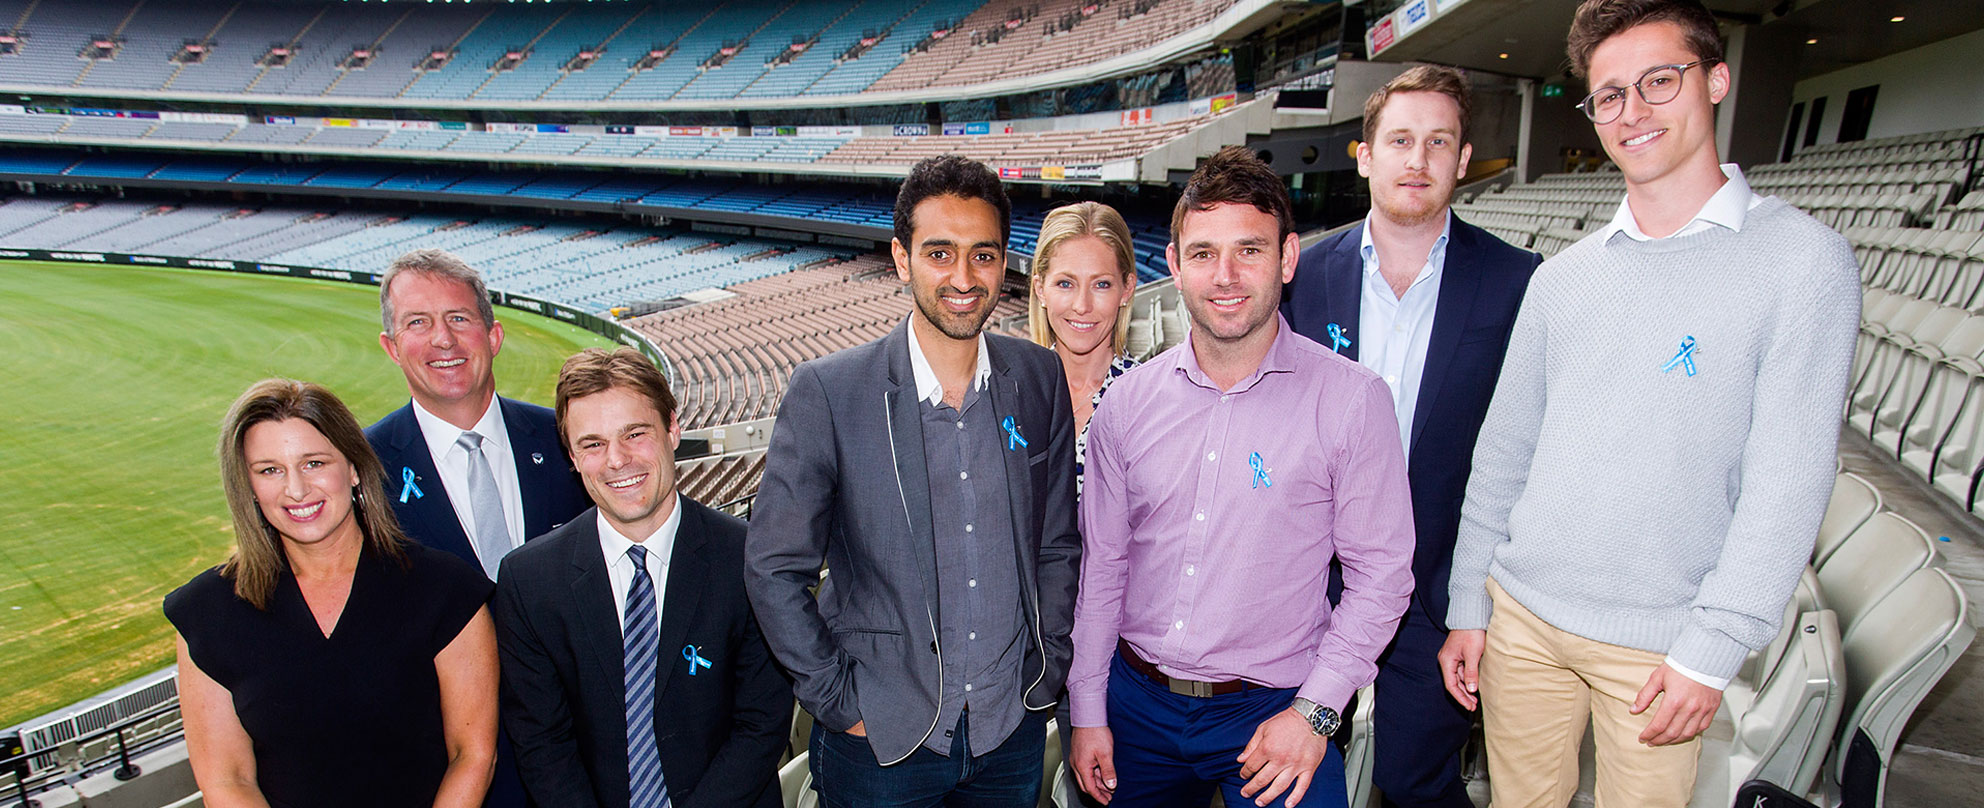 L to R: Associate professor Samantha Thomas, Melbourne Victory chief Ian Robson, AFL Players Association's Brett Johnson, forum host Waleed Aly, sports broadcaster Tiffany Cherry, RGAW champion Brent Guerra, Sportsbet head of responsible gambling Bronte Campbell, RGAW champion Jake Newstadt, photo: Paul Jeffers